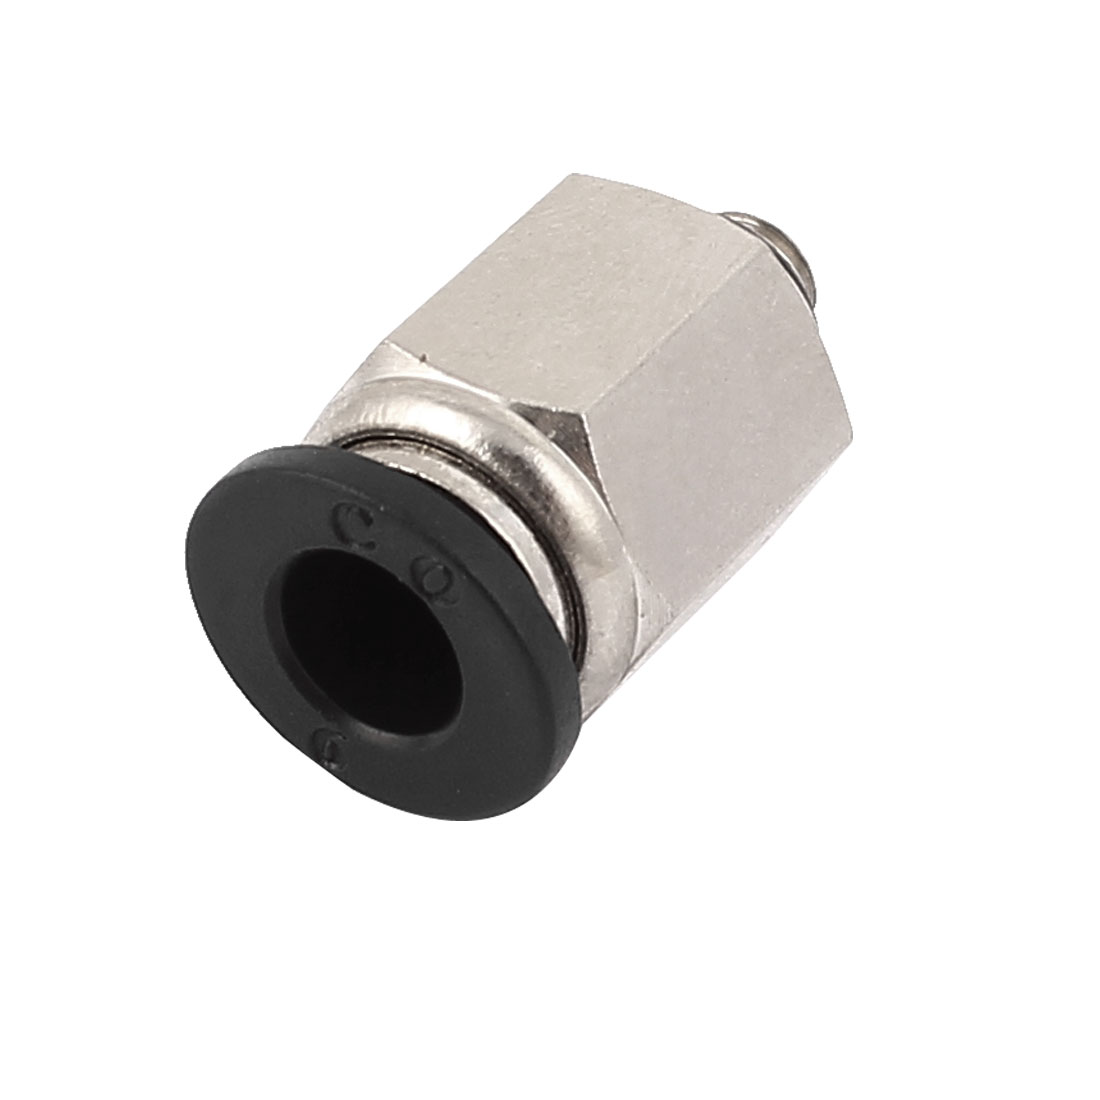 M5 Thread to 6mm Hole Tube Air Pneumatic Quick Connector Joint Fitting